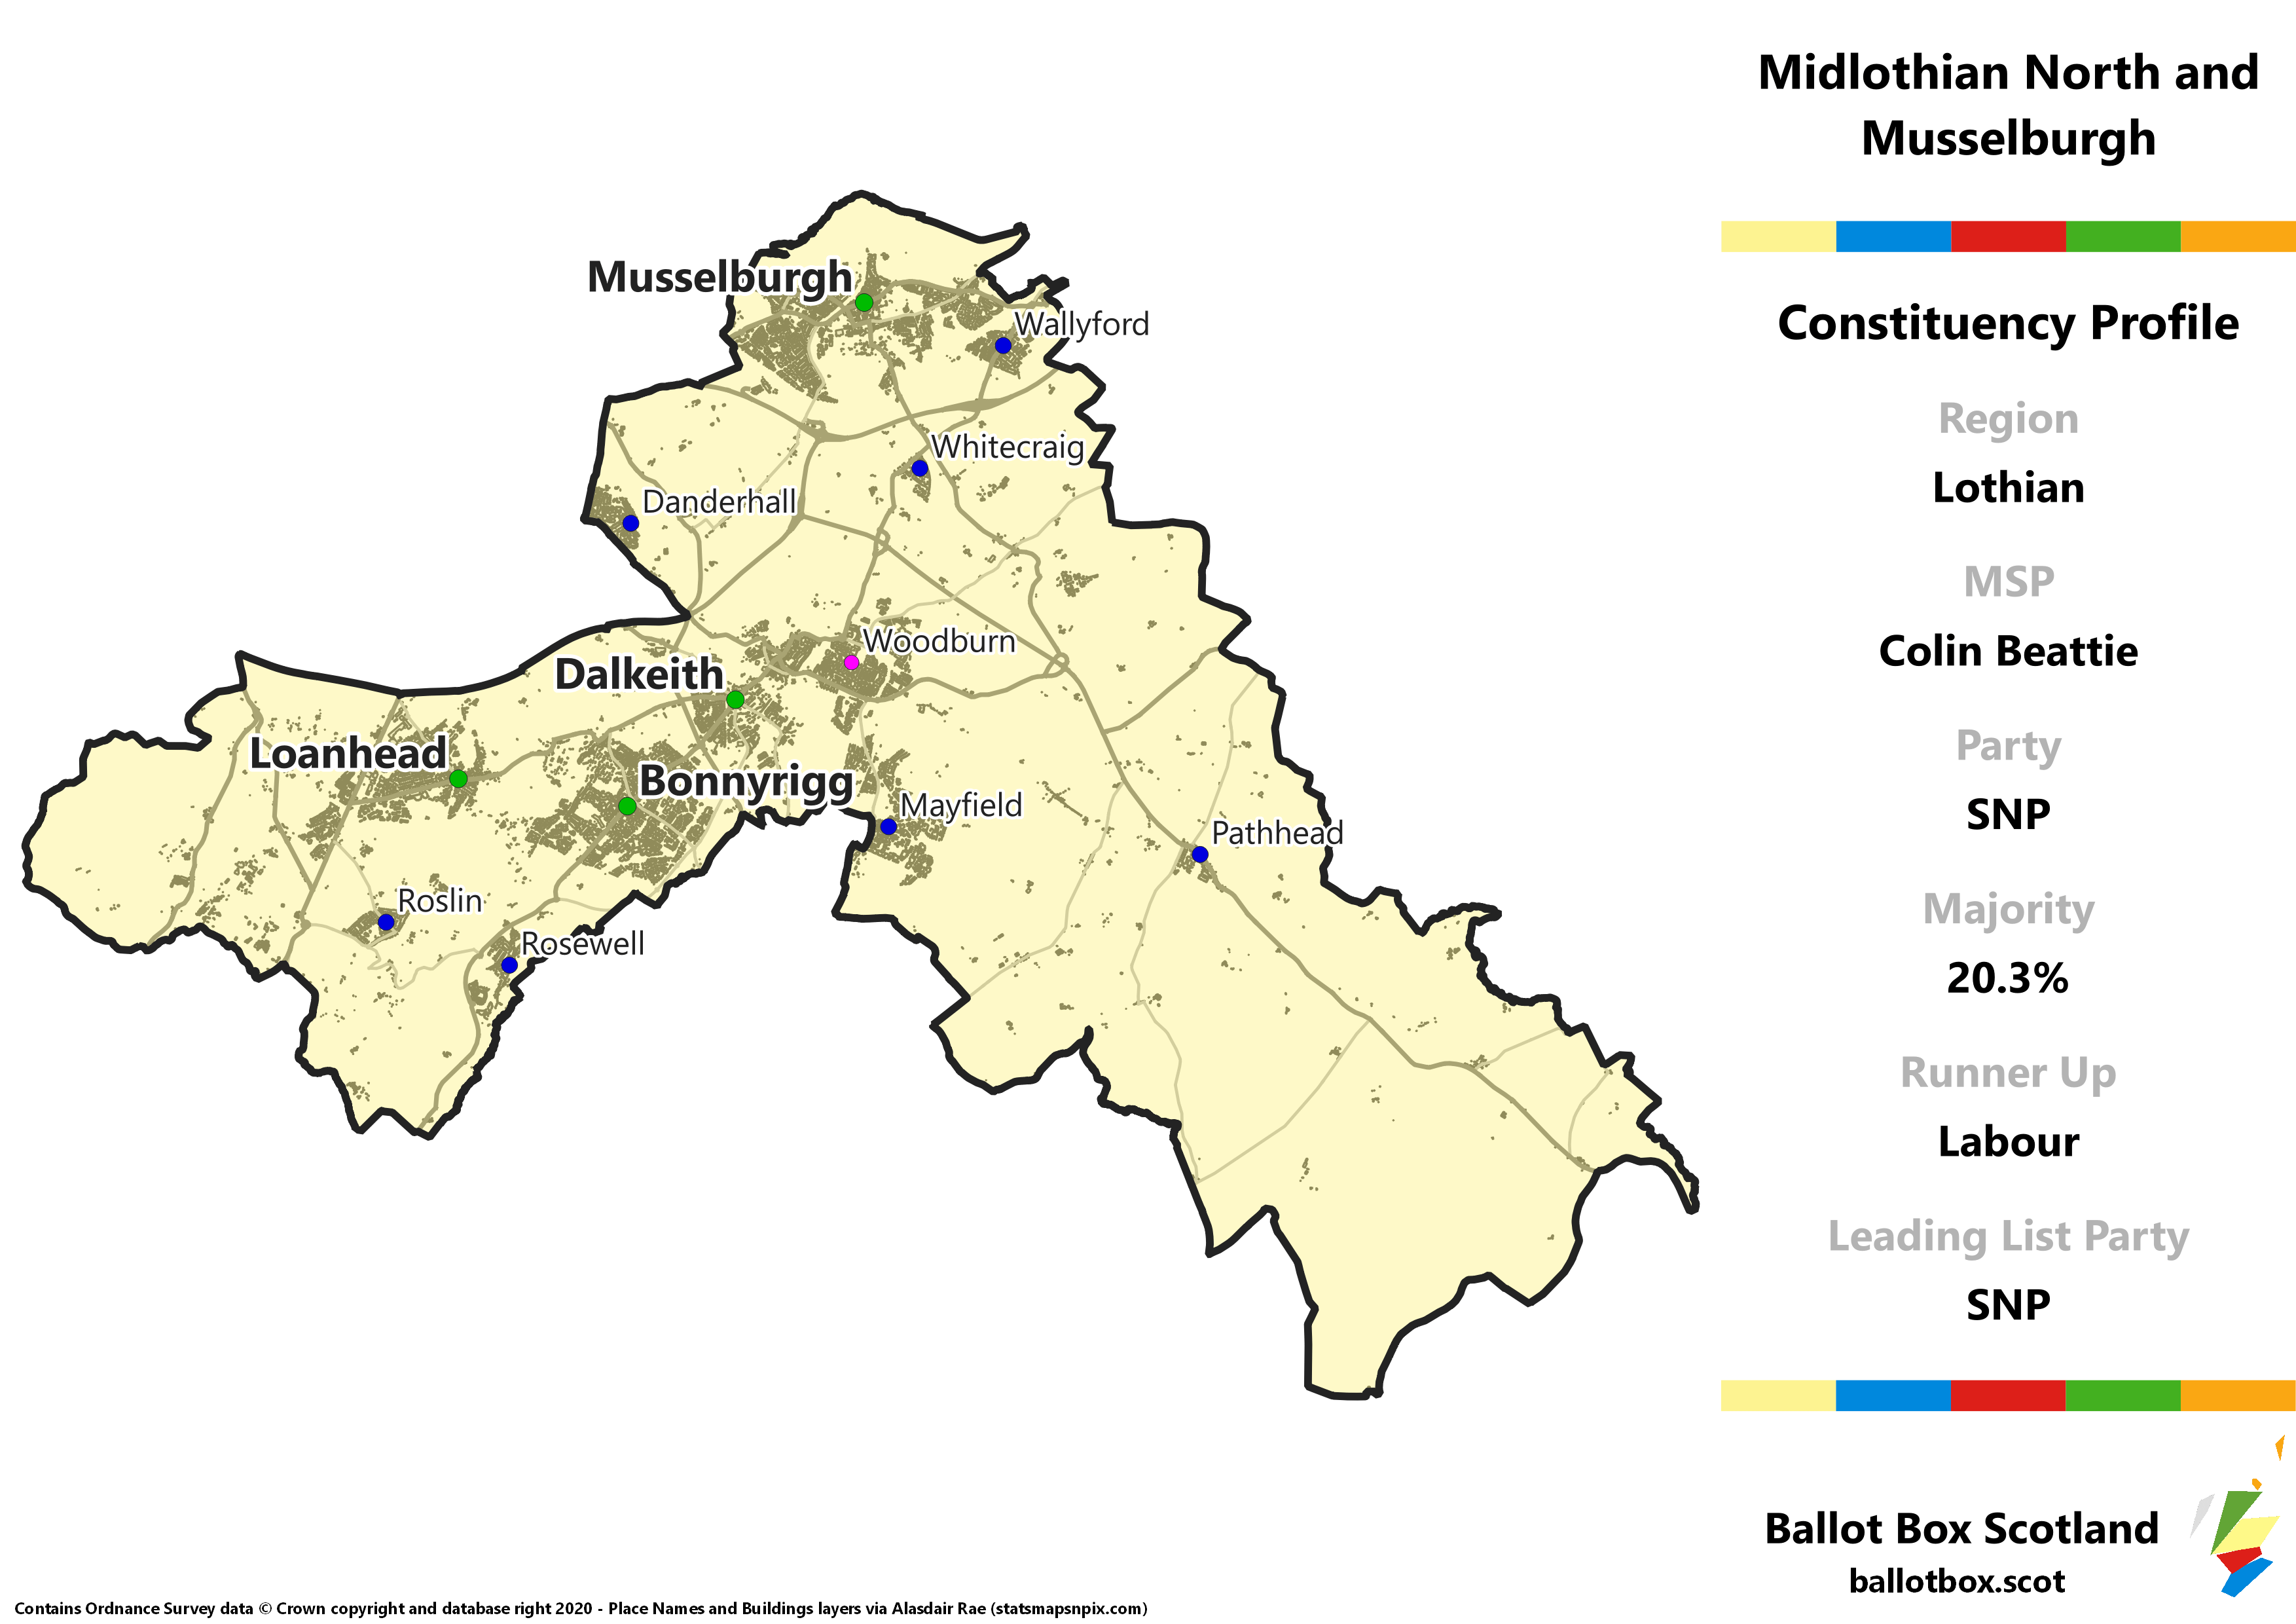 Lothian Region – Midlothian North and Musselburgh Constituency Map